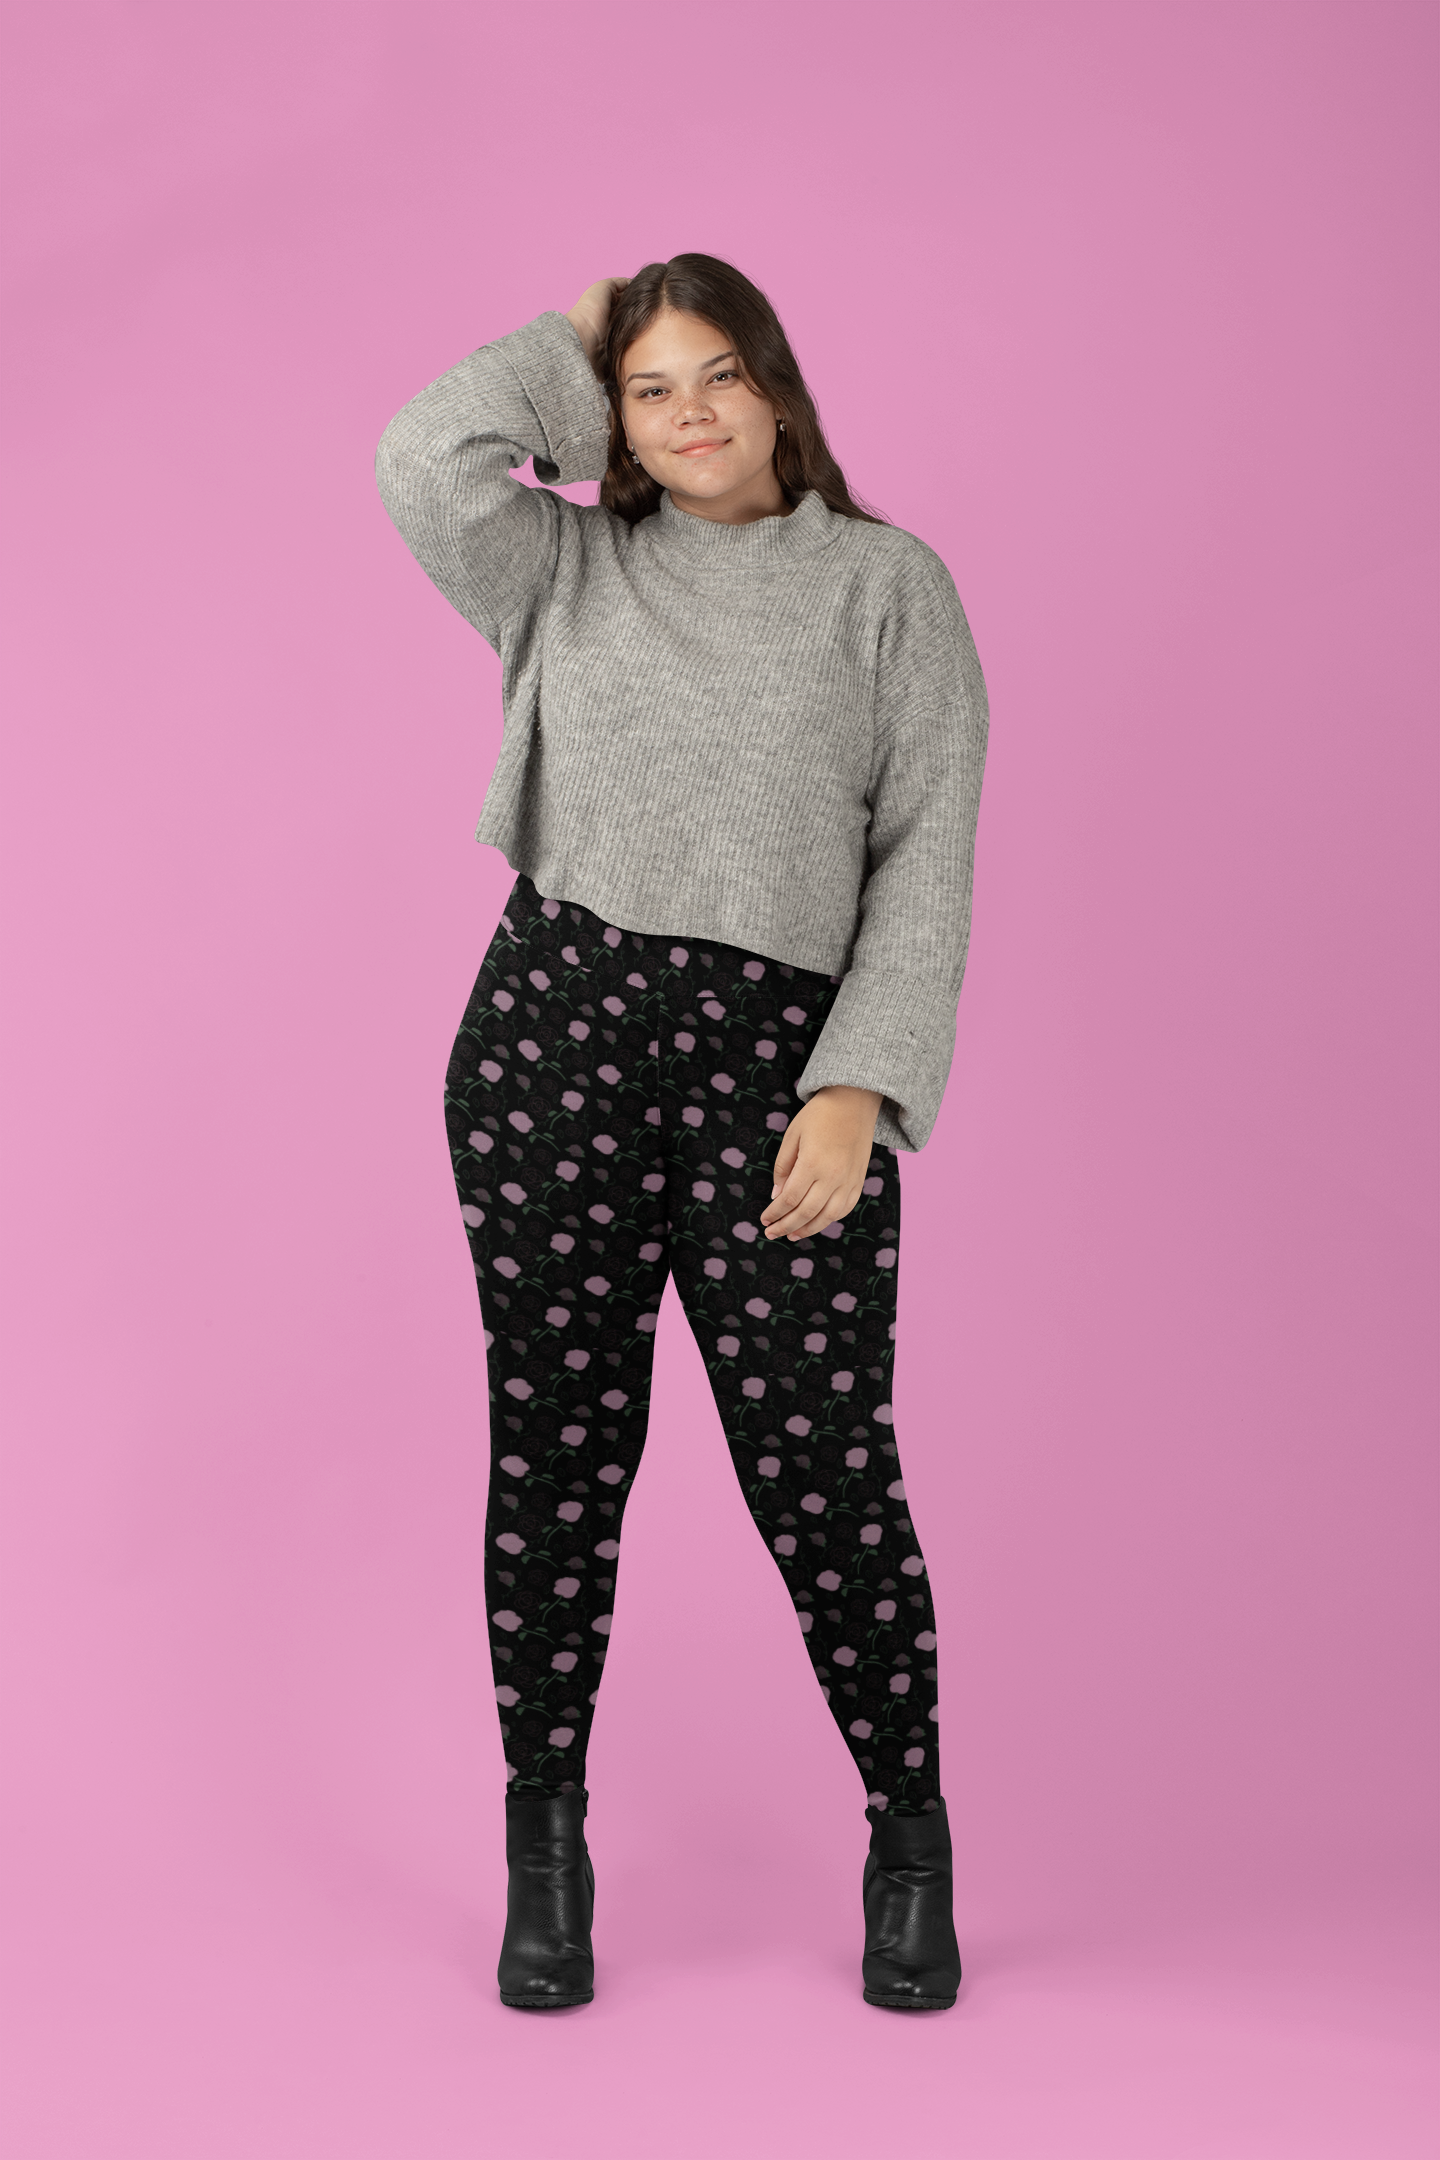 Photo of Plus Size Pink Rose Patterned Leggings-Workout-Yoga-Curvy-Plus Size Fashion-Body Positive